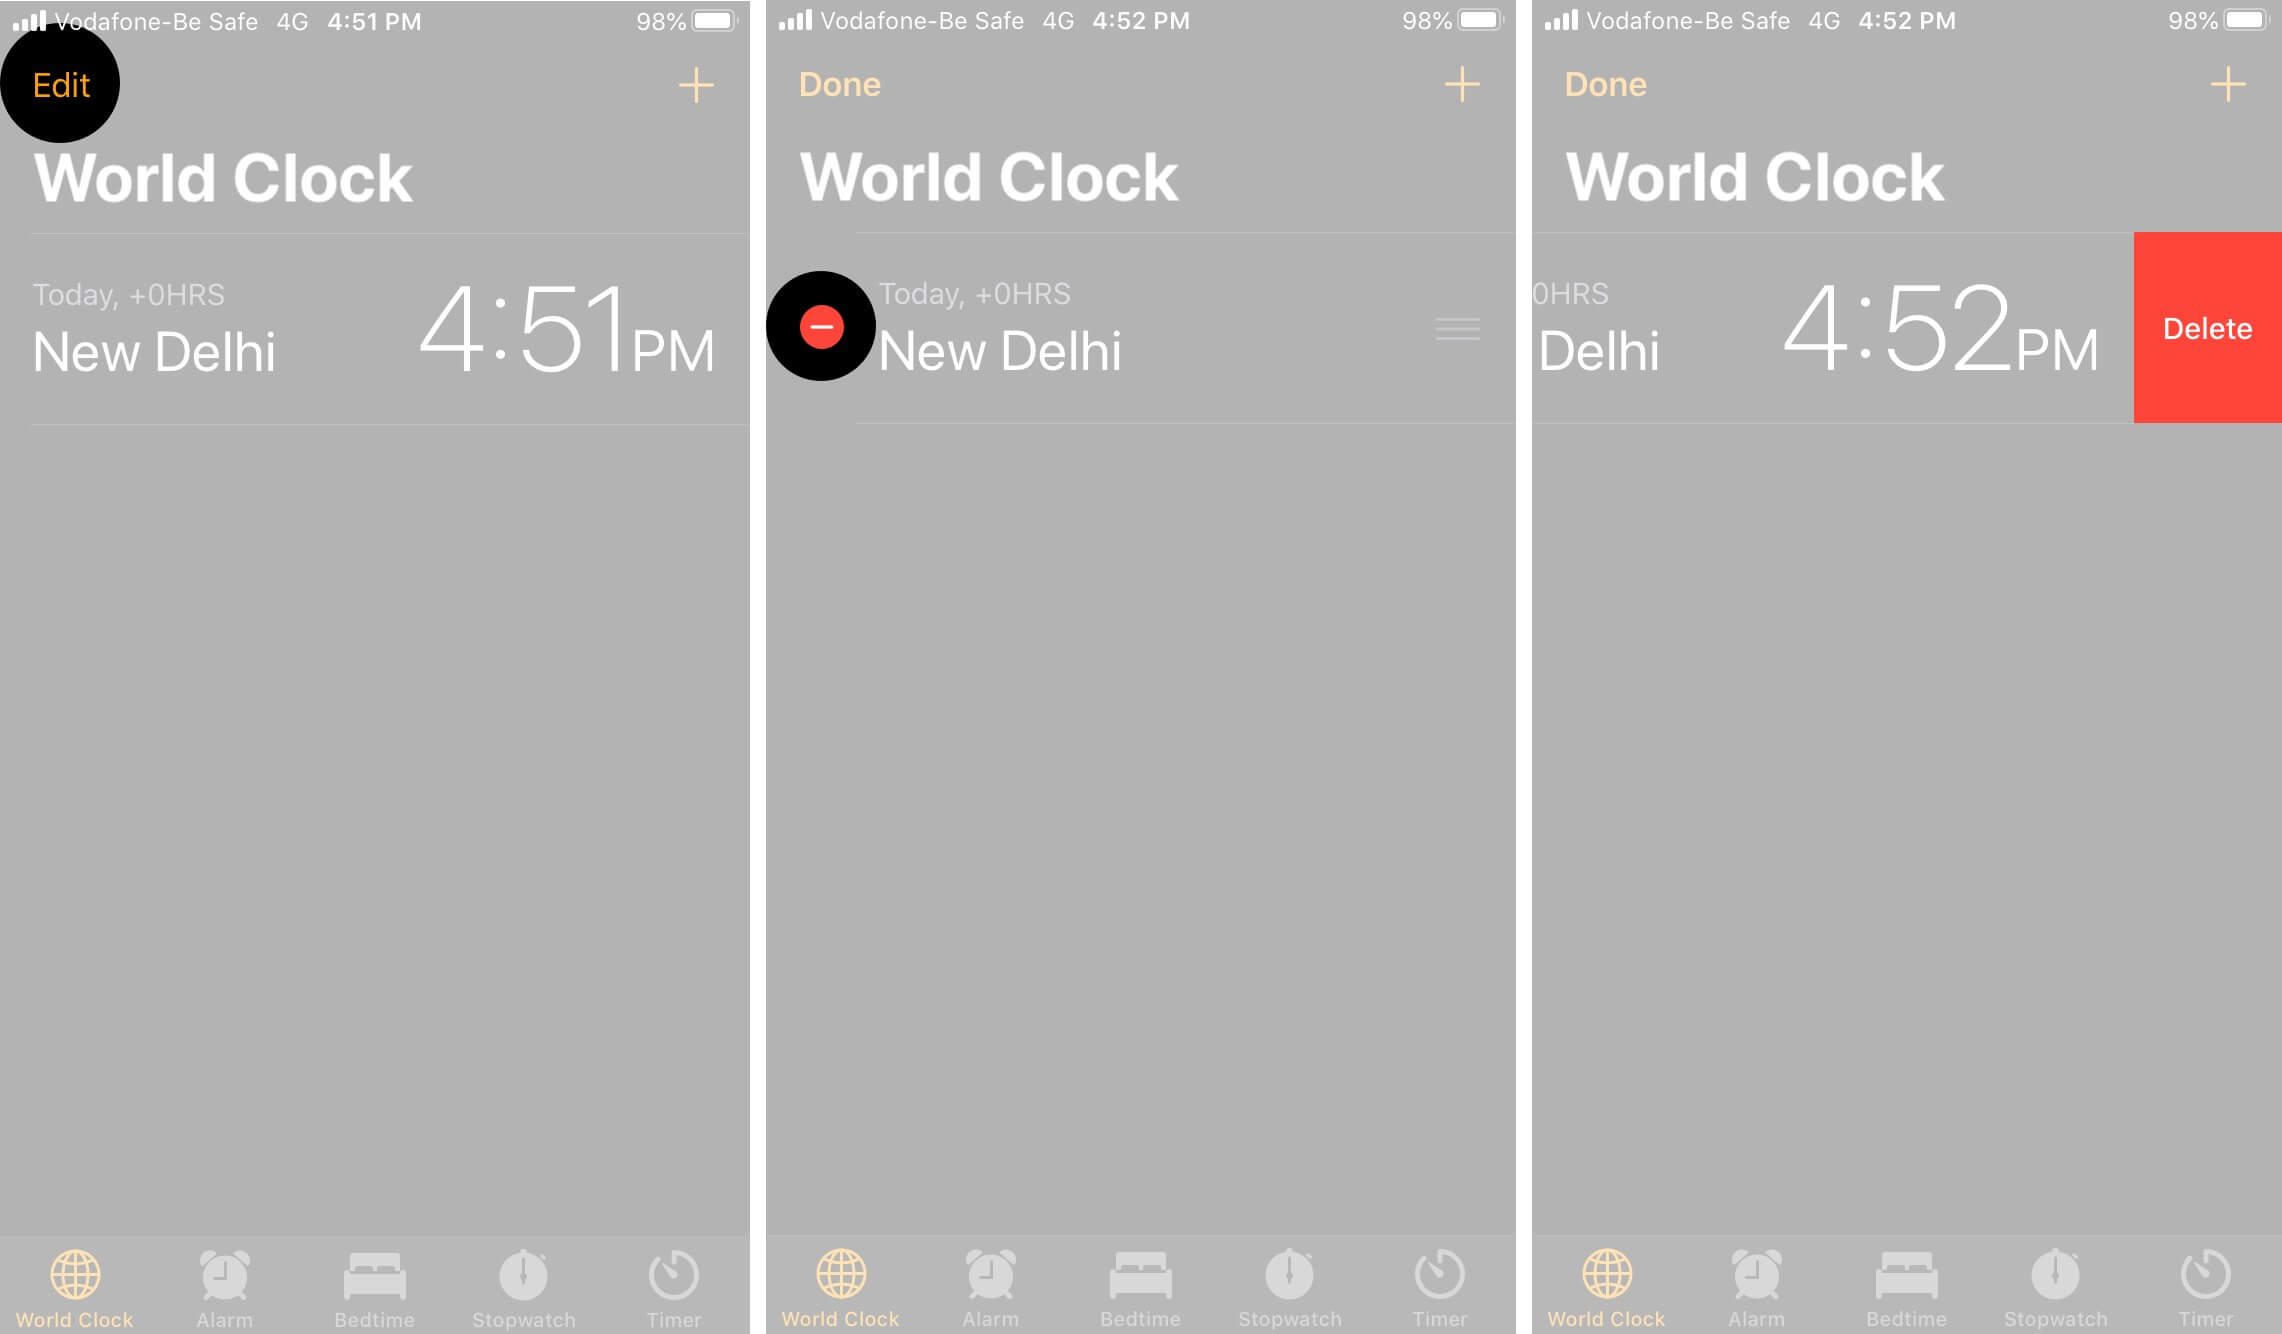 Tap on Delete to Remove World Clock on iPhone